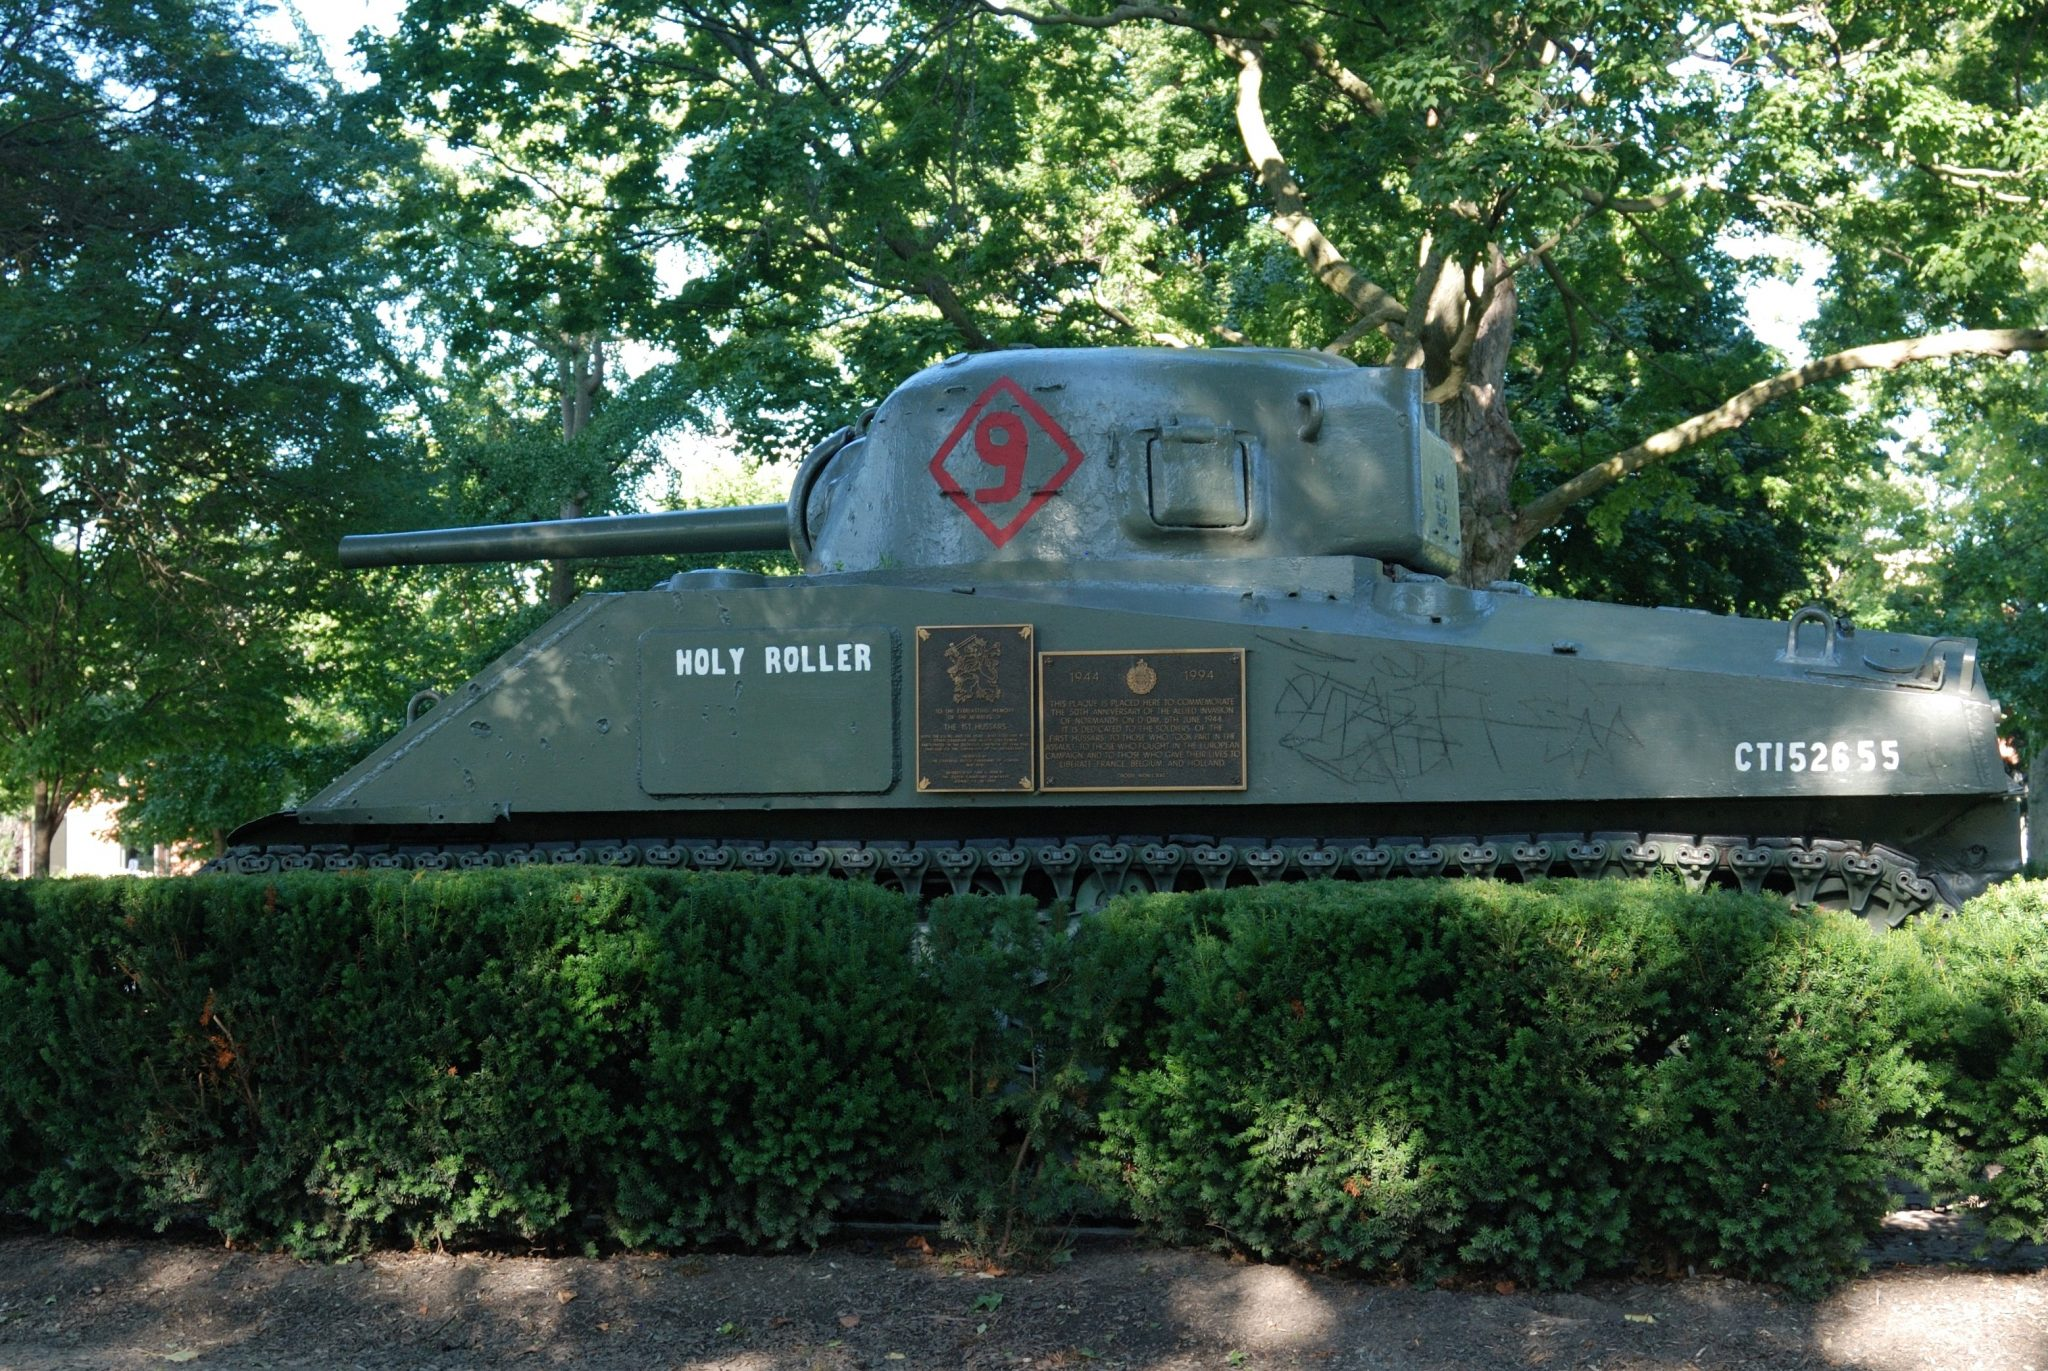 The Holy Roller Tank at Victoria Park in London, Ontario